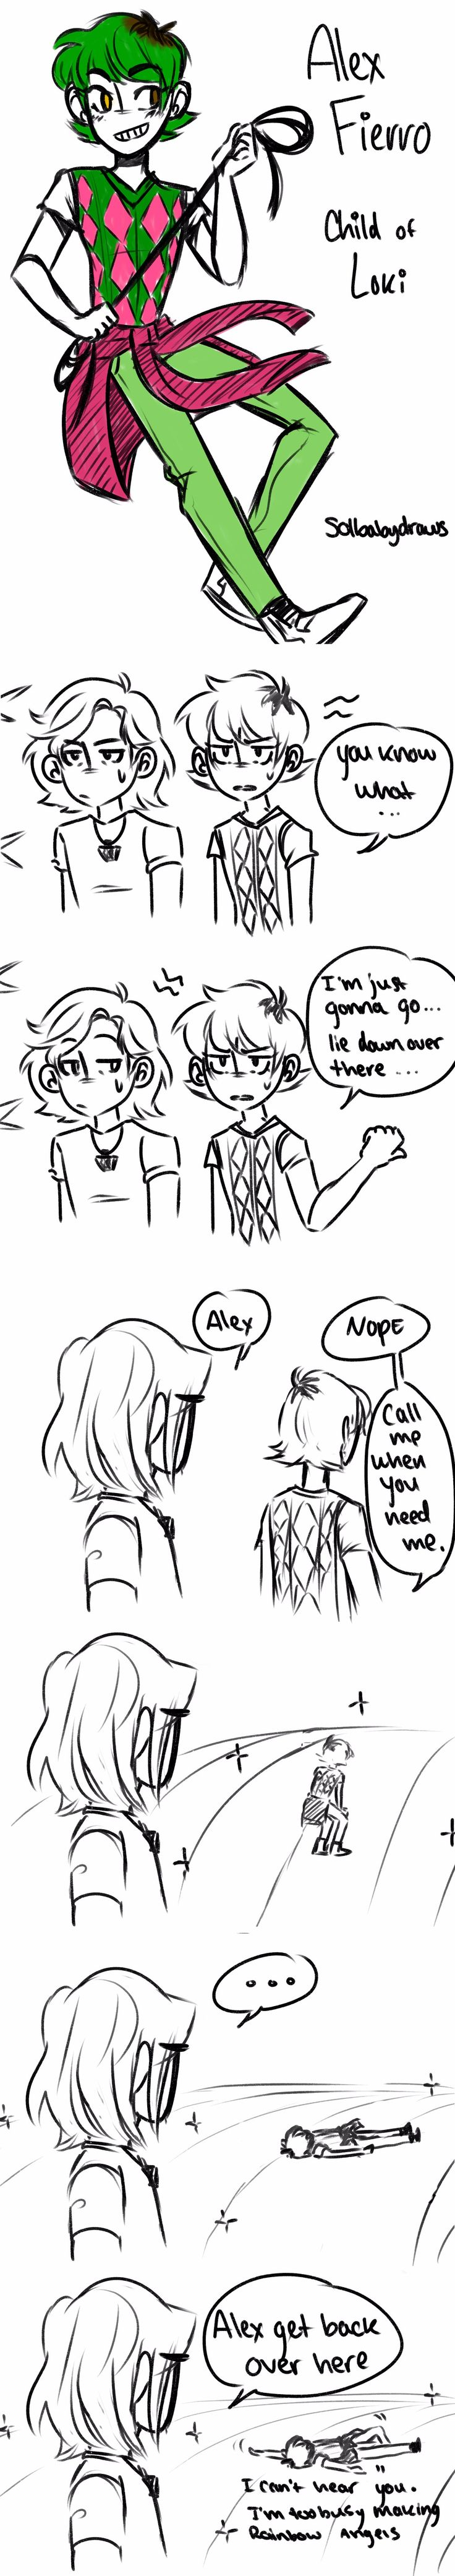 solbabydraws: There were a lot of great Alex moments, but my personal favorite is when Alex just randomly decided to nope the entire conversation on the rainbow bridge and just went to lay down on the ground like??? it was just so random and I loved every second of it. Alex's priorities are on point.